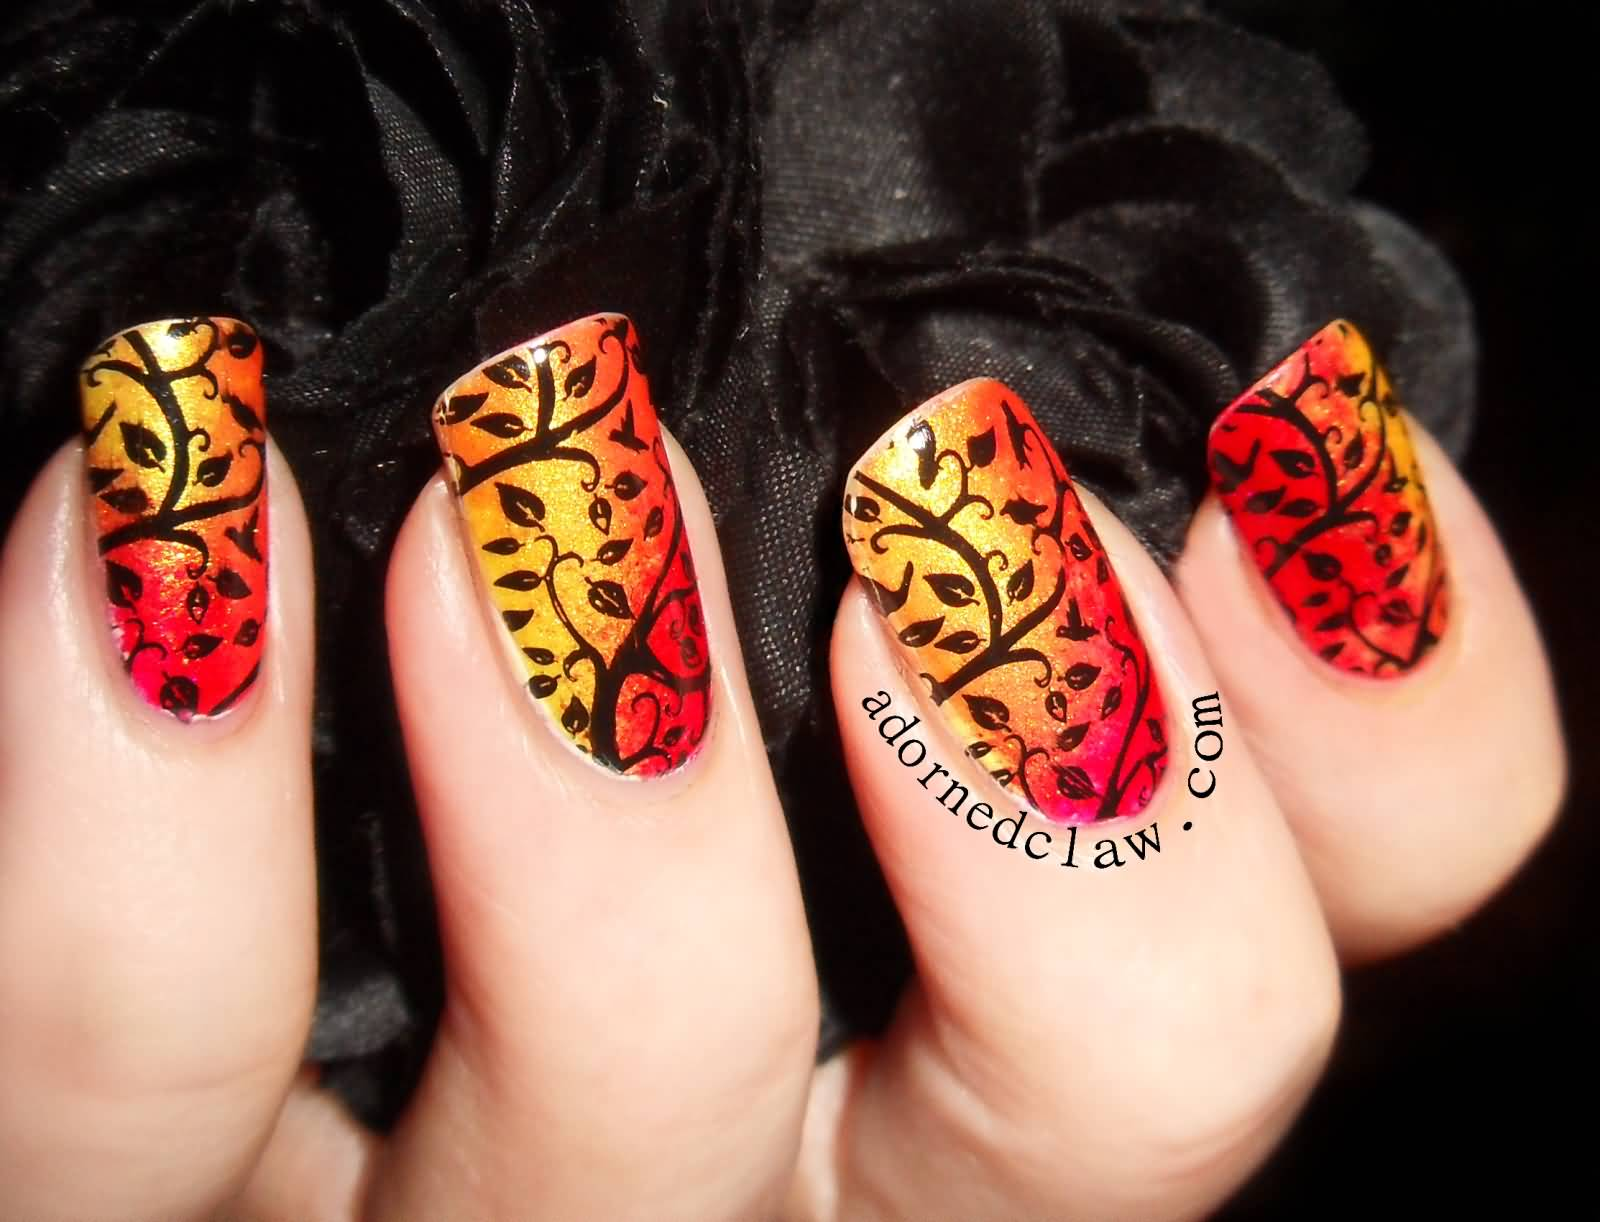 Orange And Yellow Gradient Nails With Black Autumn Leaves Nail Art Design Idea